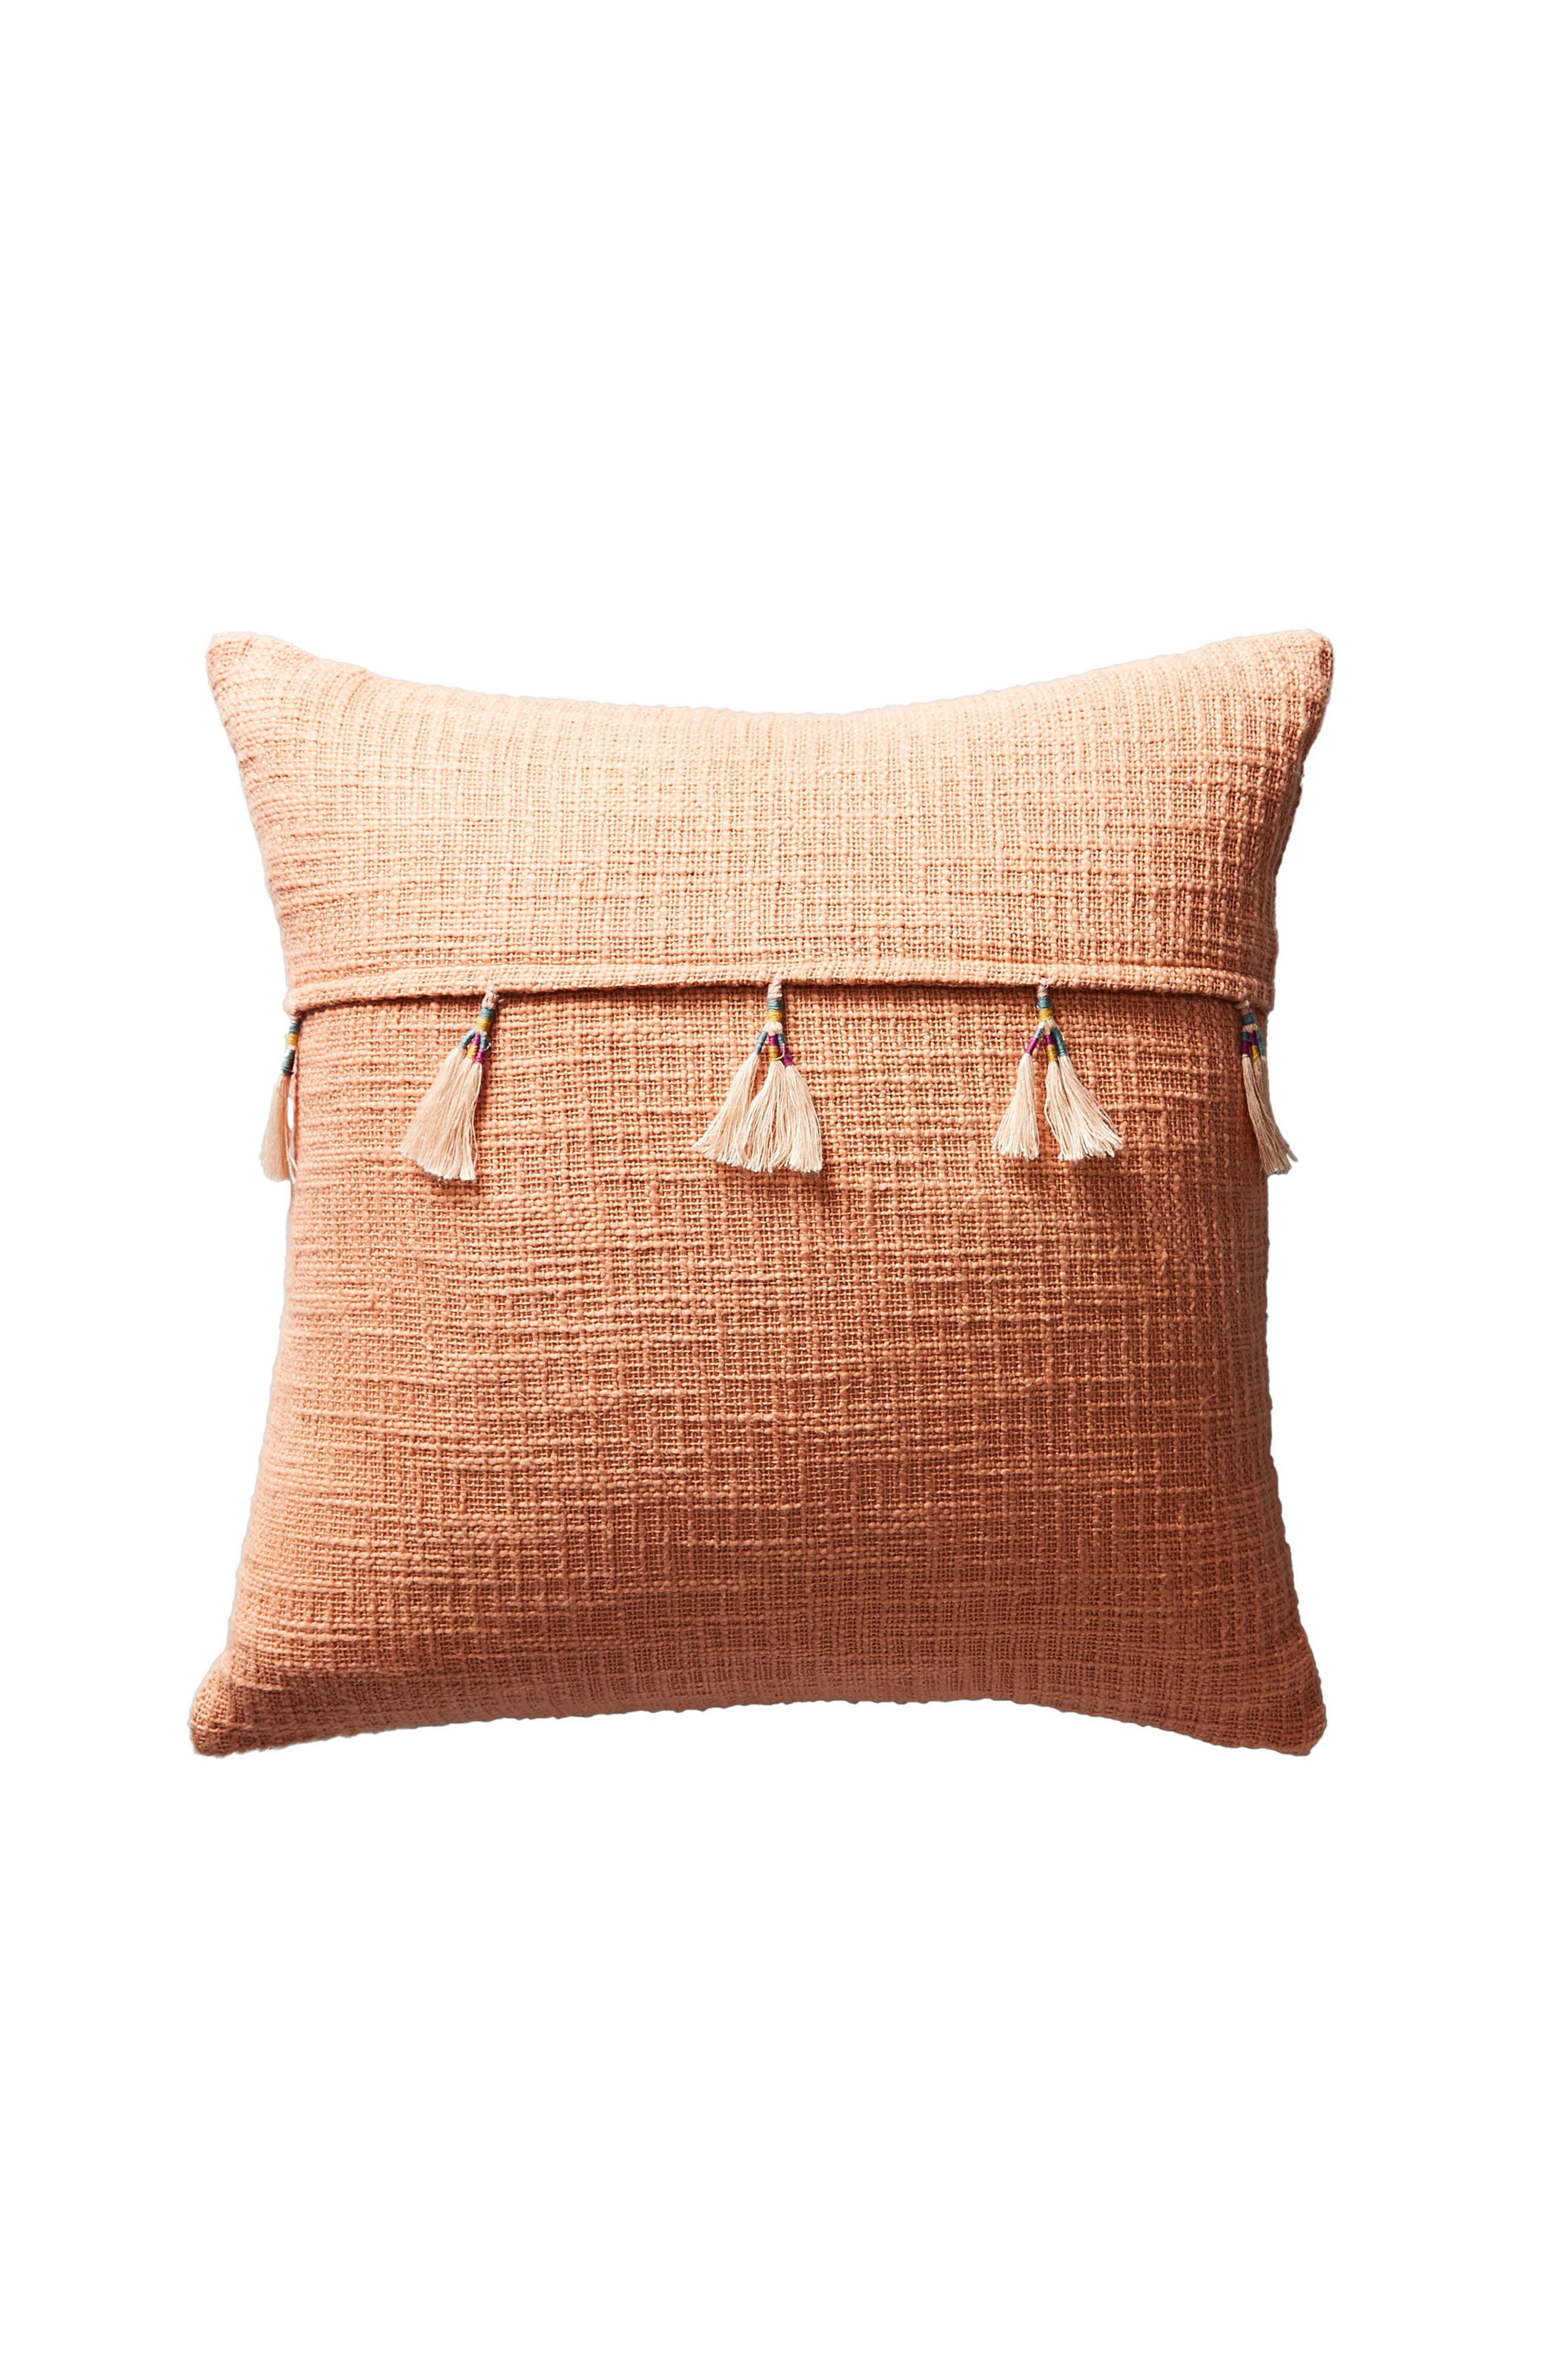 Varied Tassel Accent Pillow,                             Alternate thumbnail 3, color,                             950